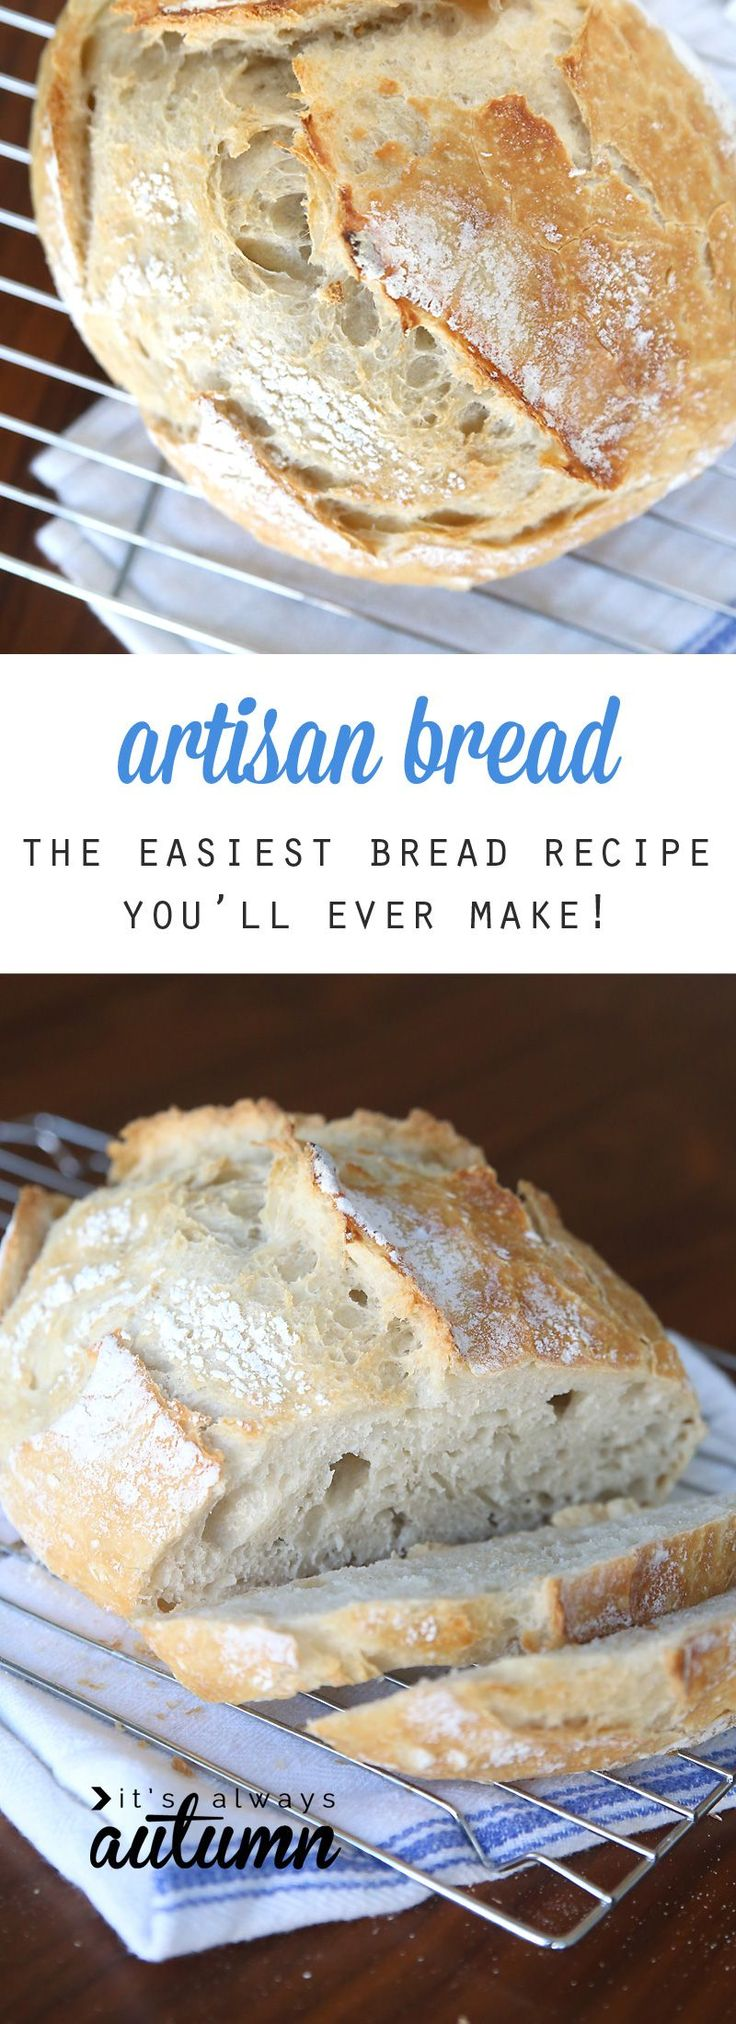 Artisan bread recipe. It only takes 4 ingredients and 5 minutes of hands on time for crusty, delicious bread!